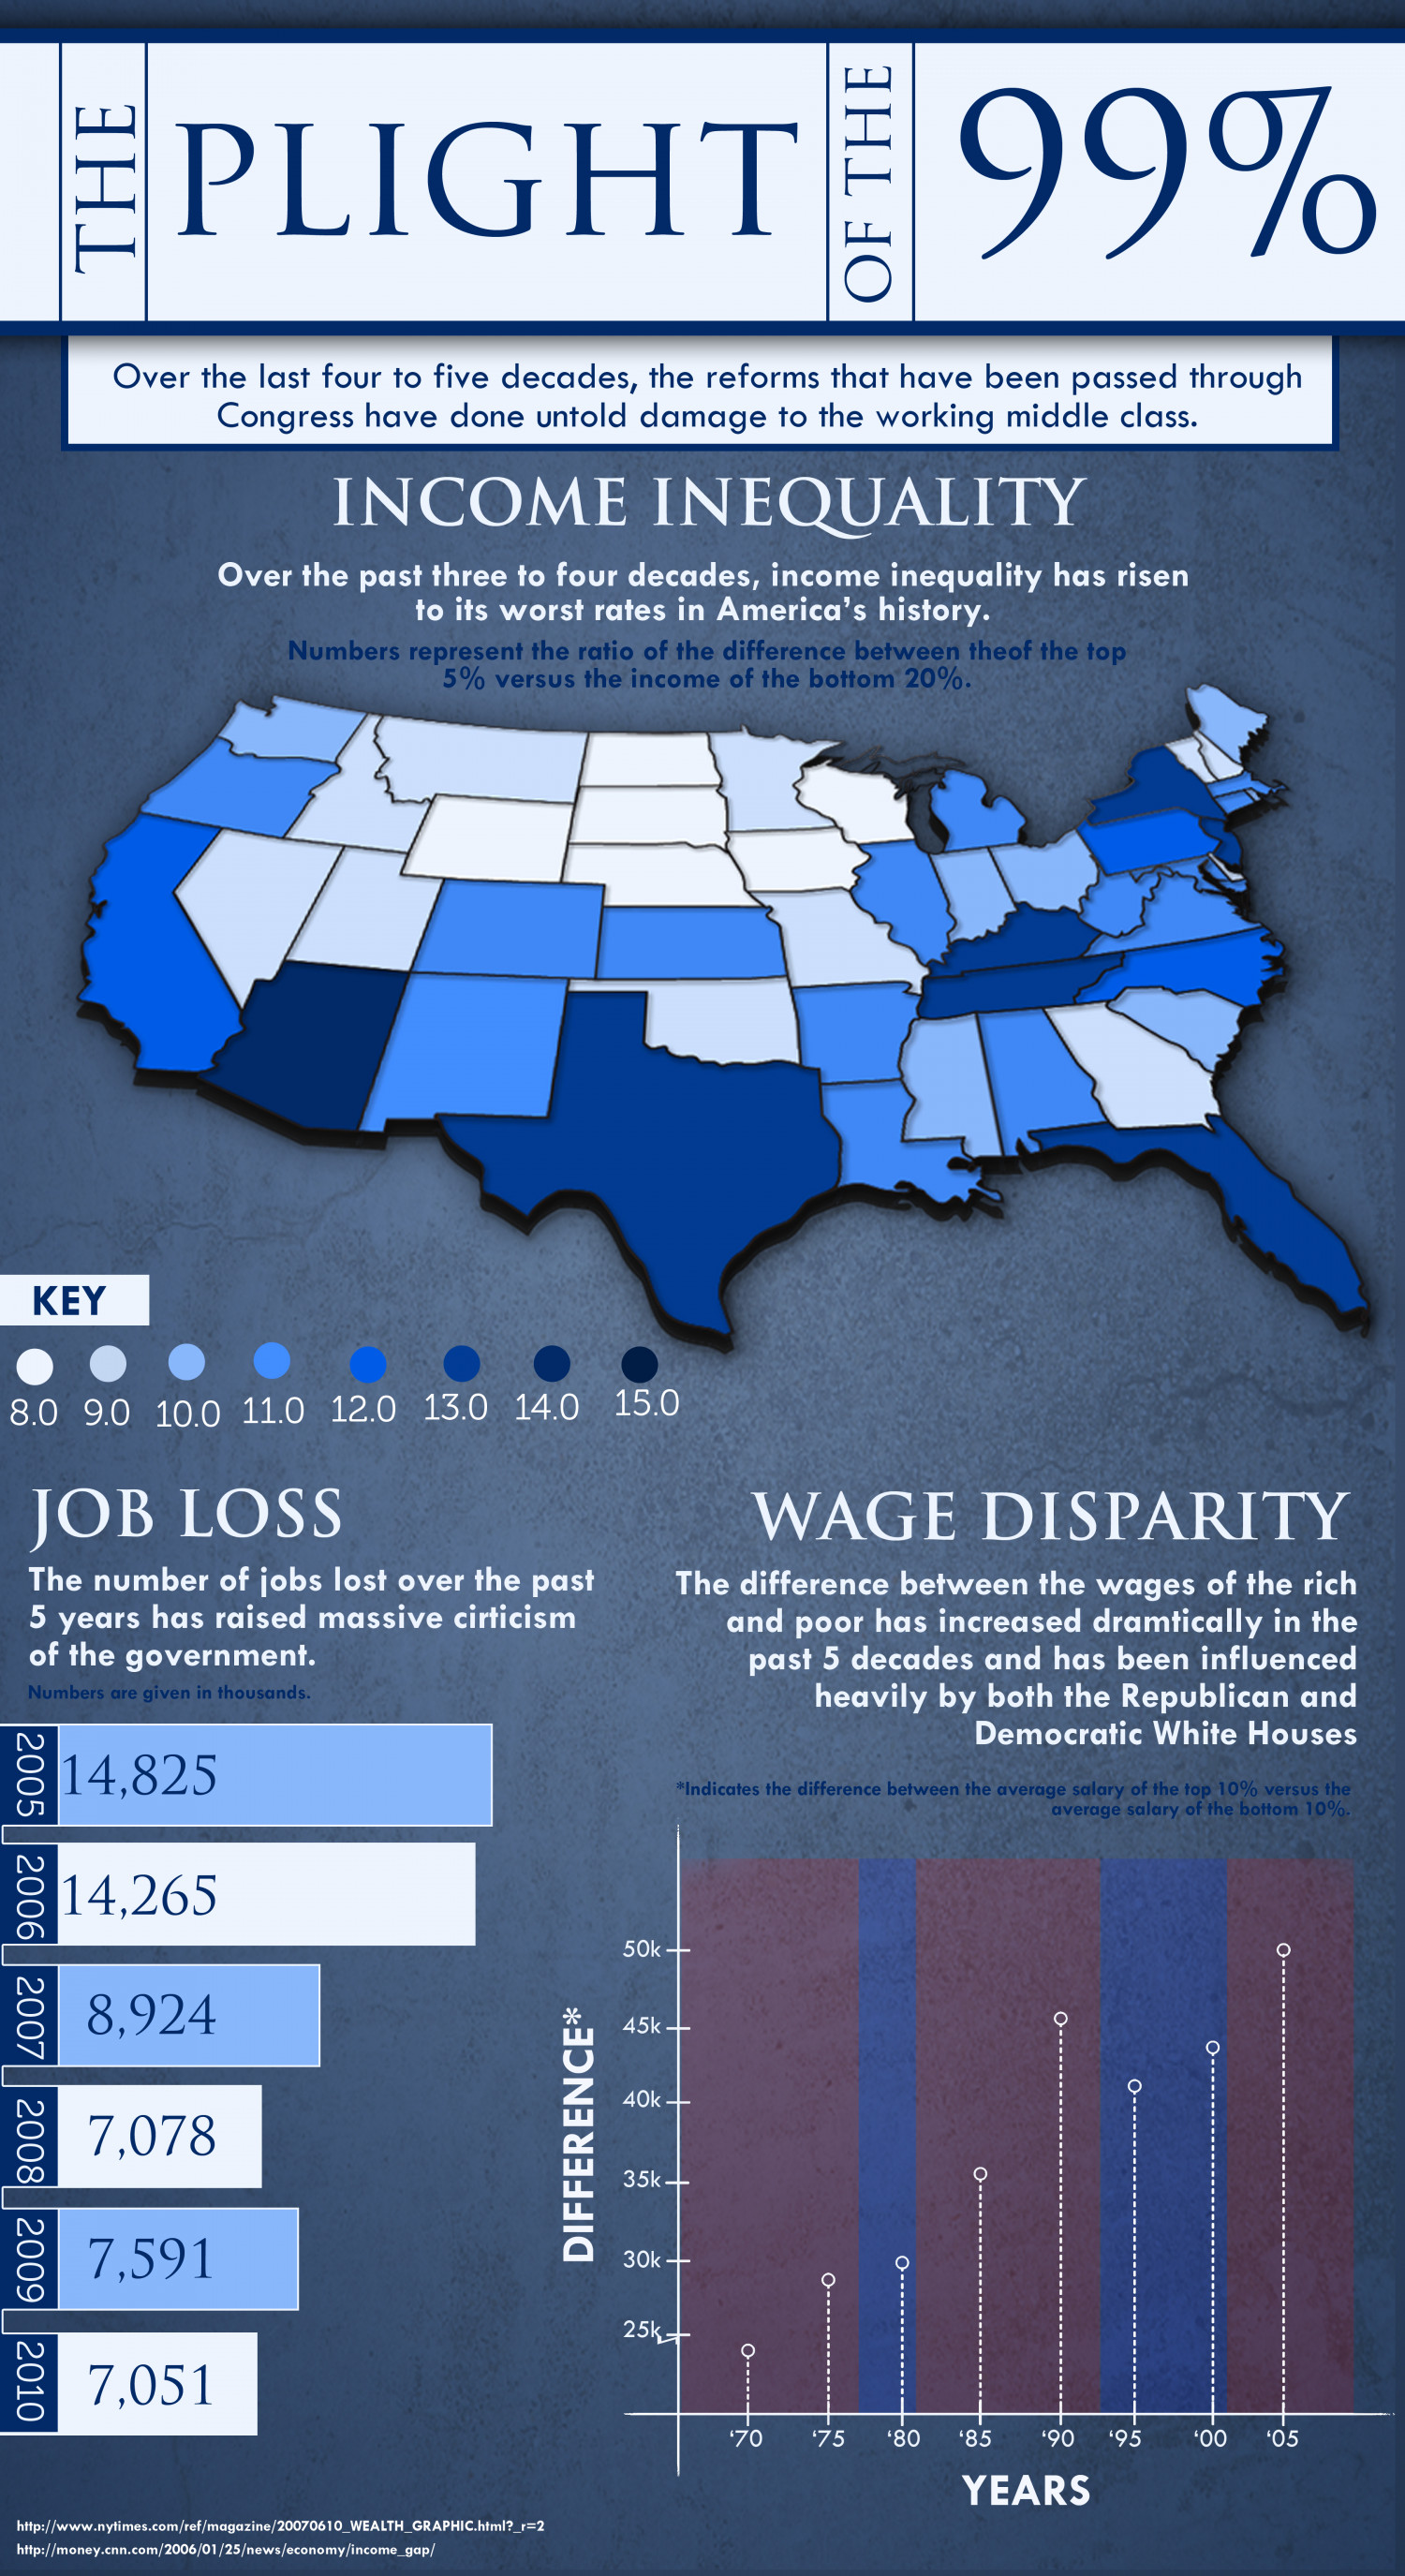 The Plight of the 99% Infographic